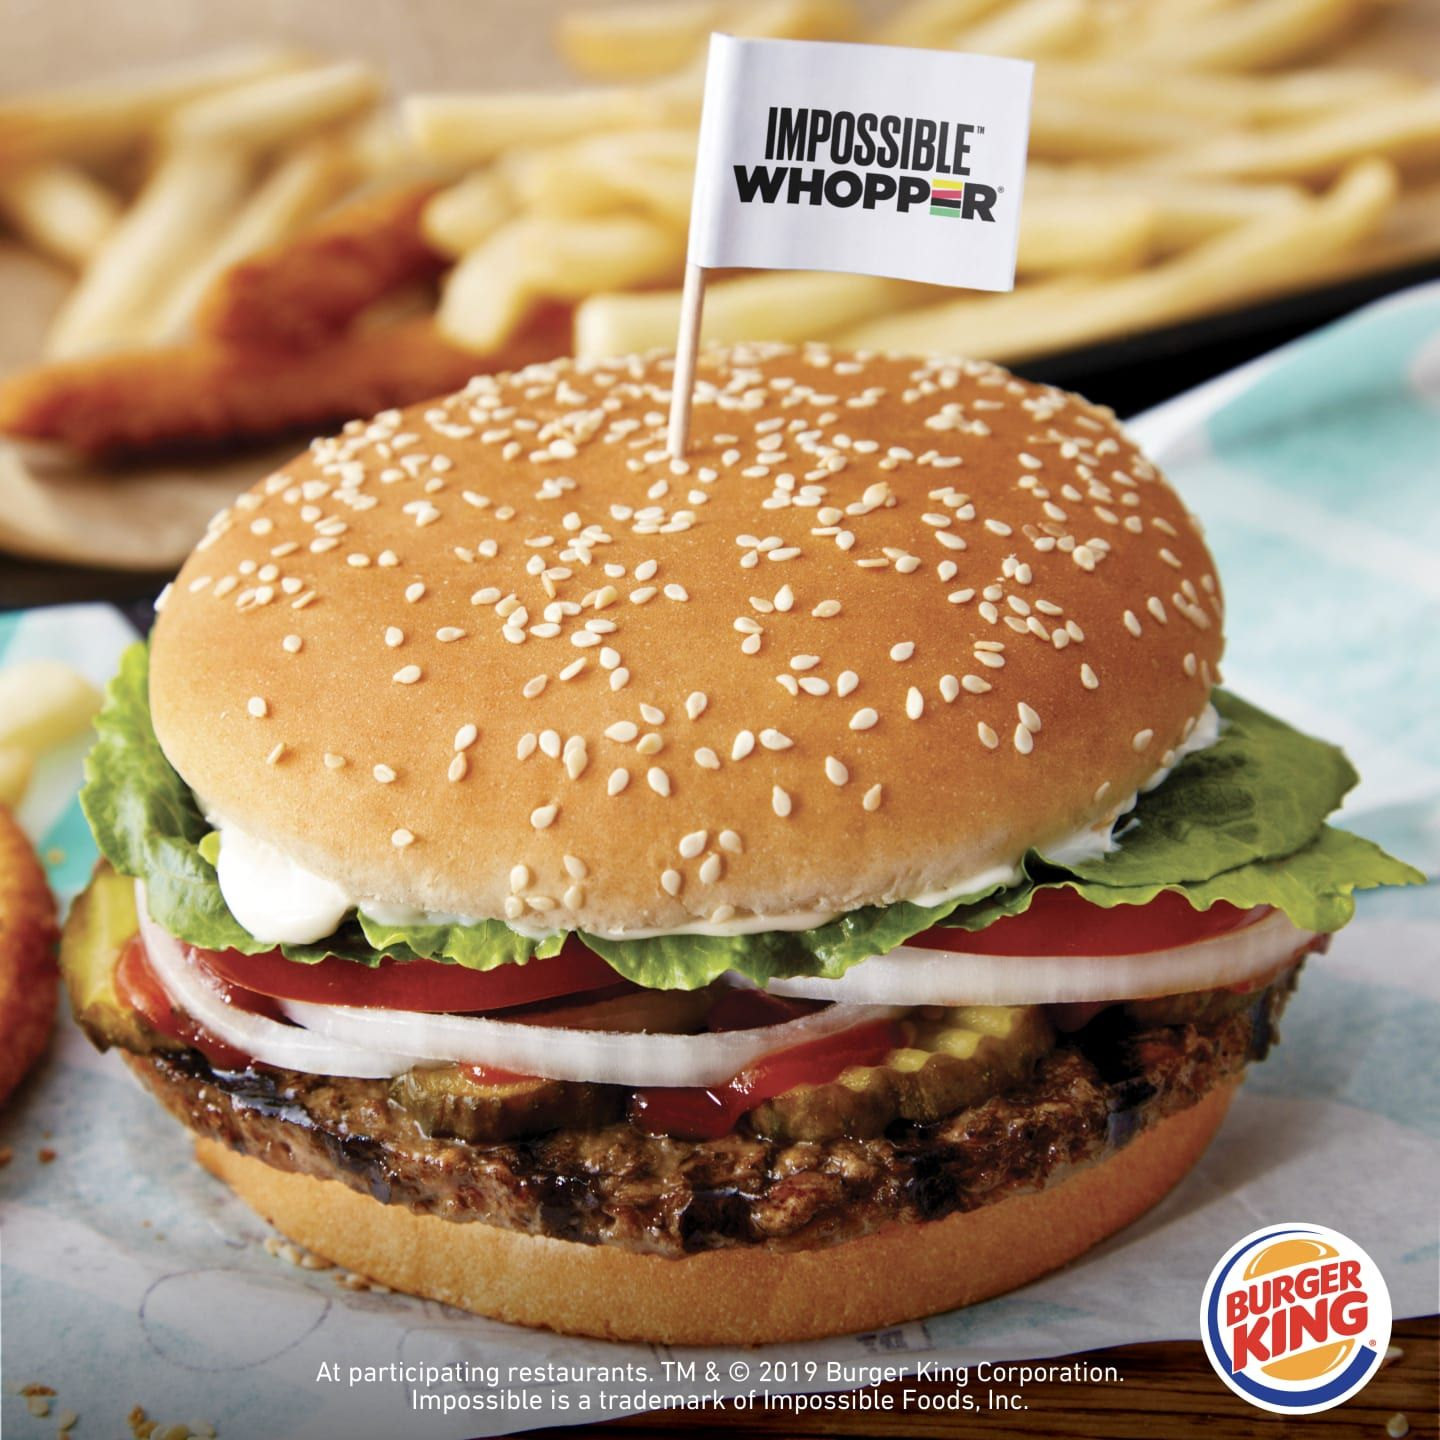 Burger King Launches Its Vegan Impossible Whopper In 100 Outlets Across California Iheartvegans Impossible Burger Burger Burger King